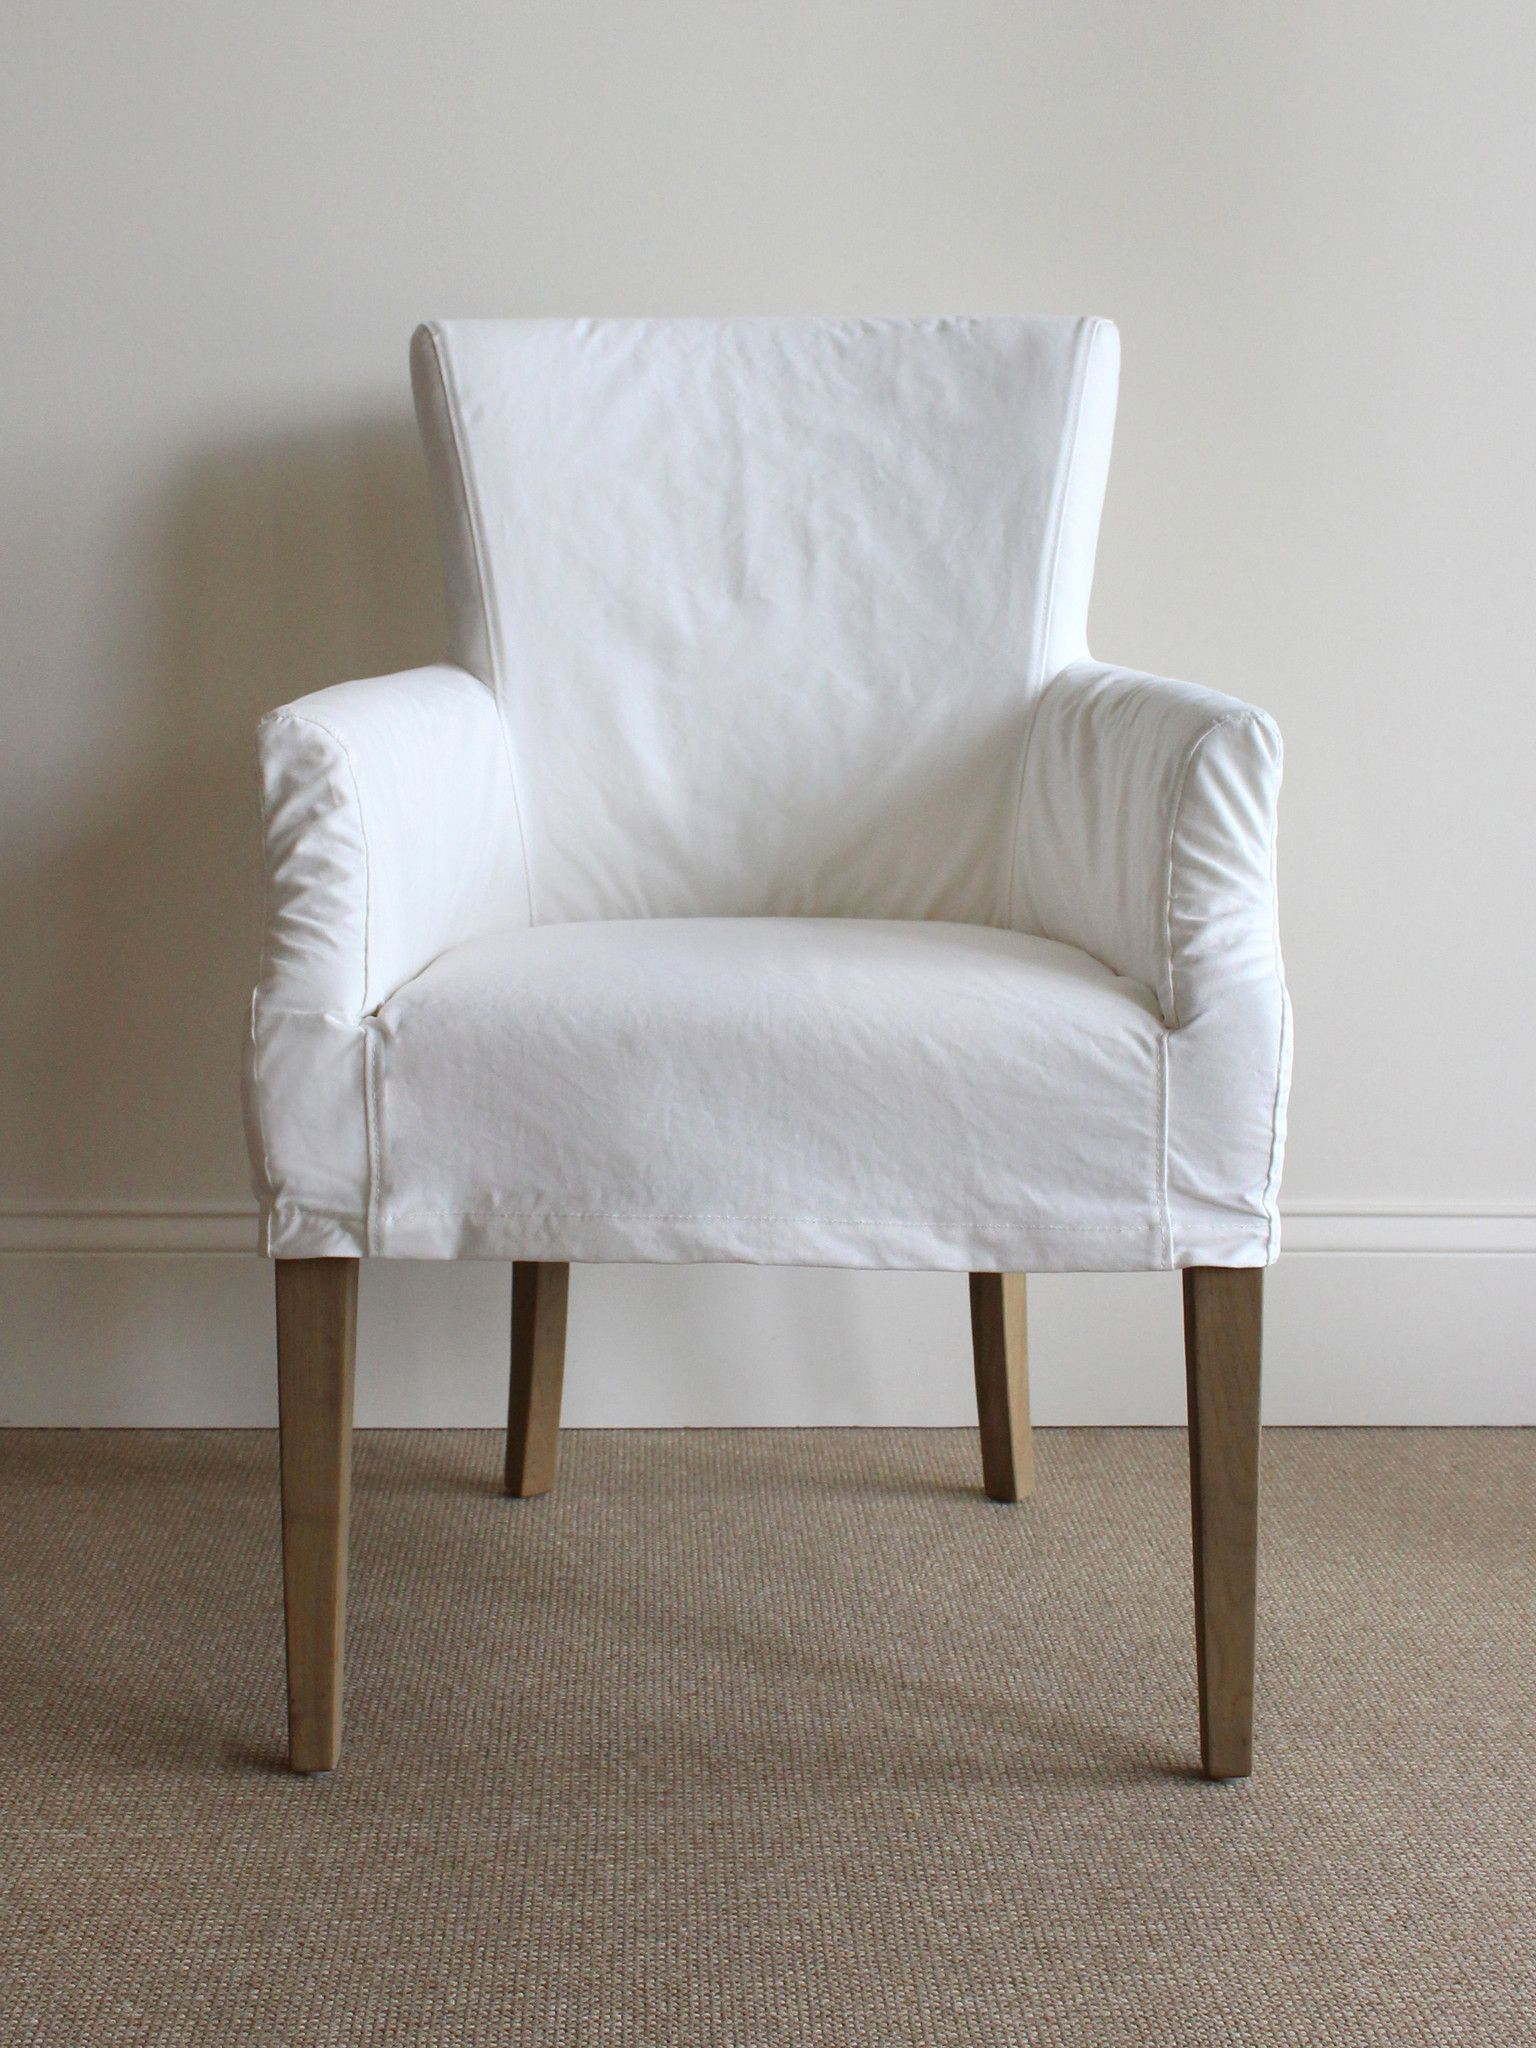 Slipcovered Dining Chair Dining chair slipcovers, Chair